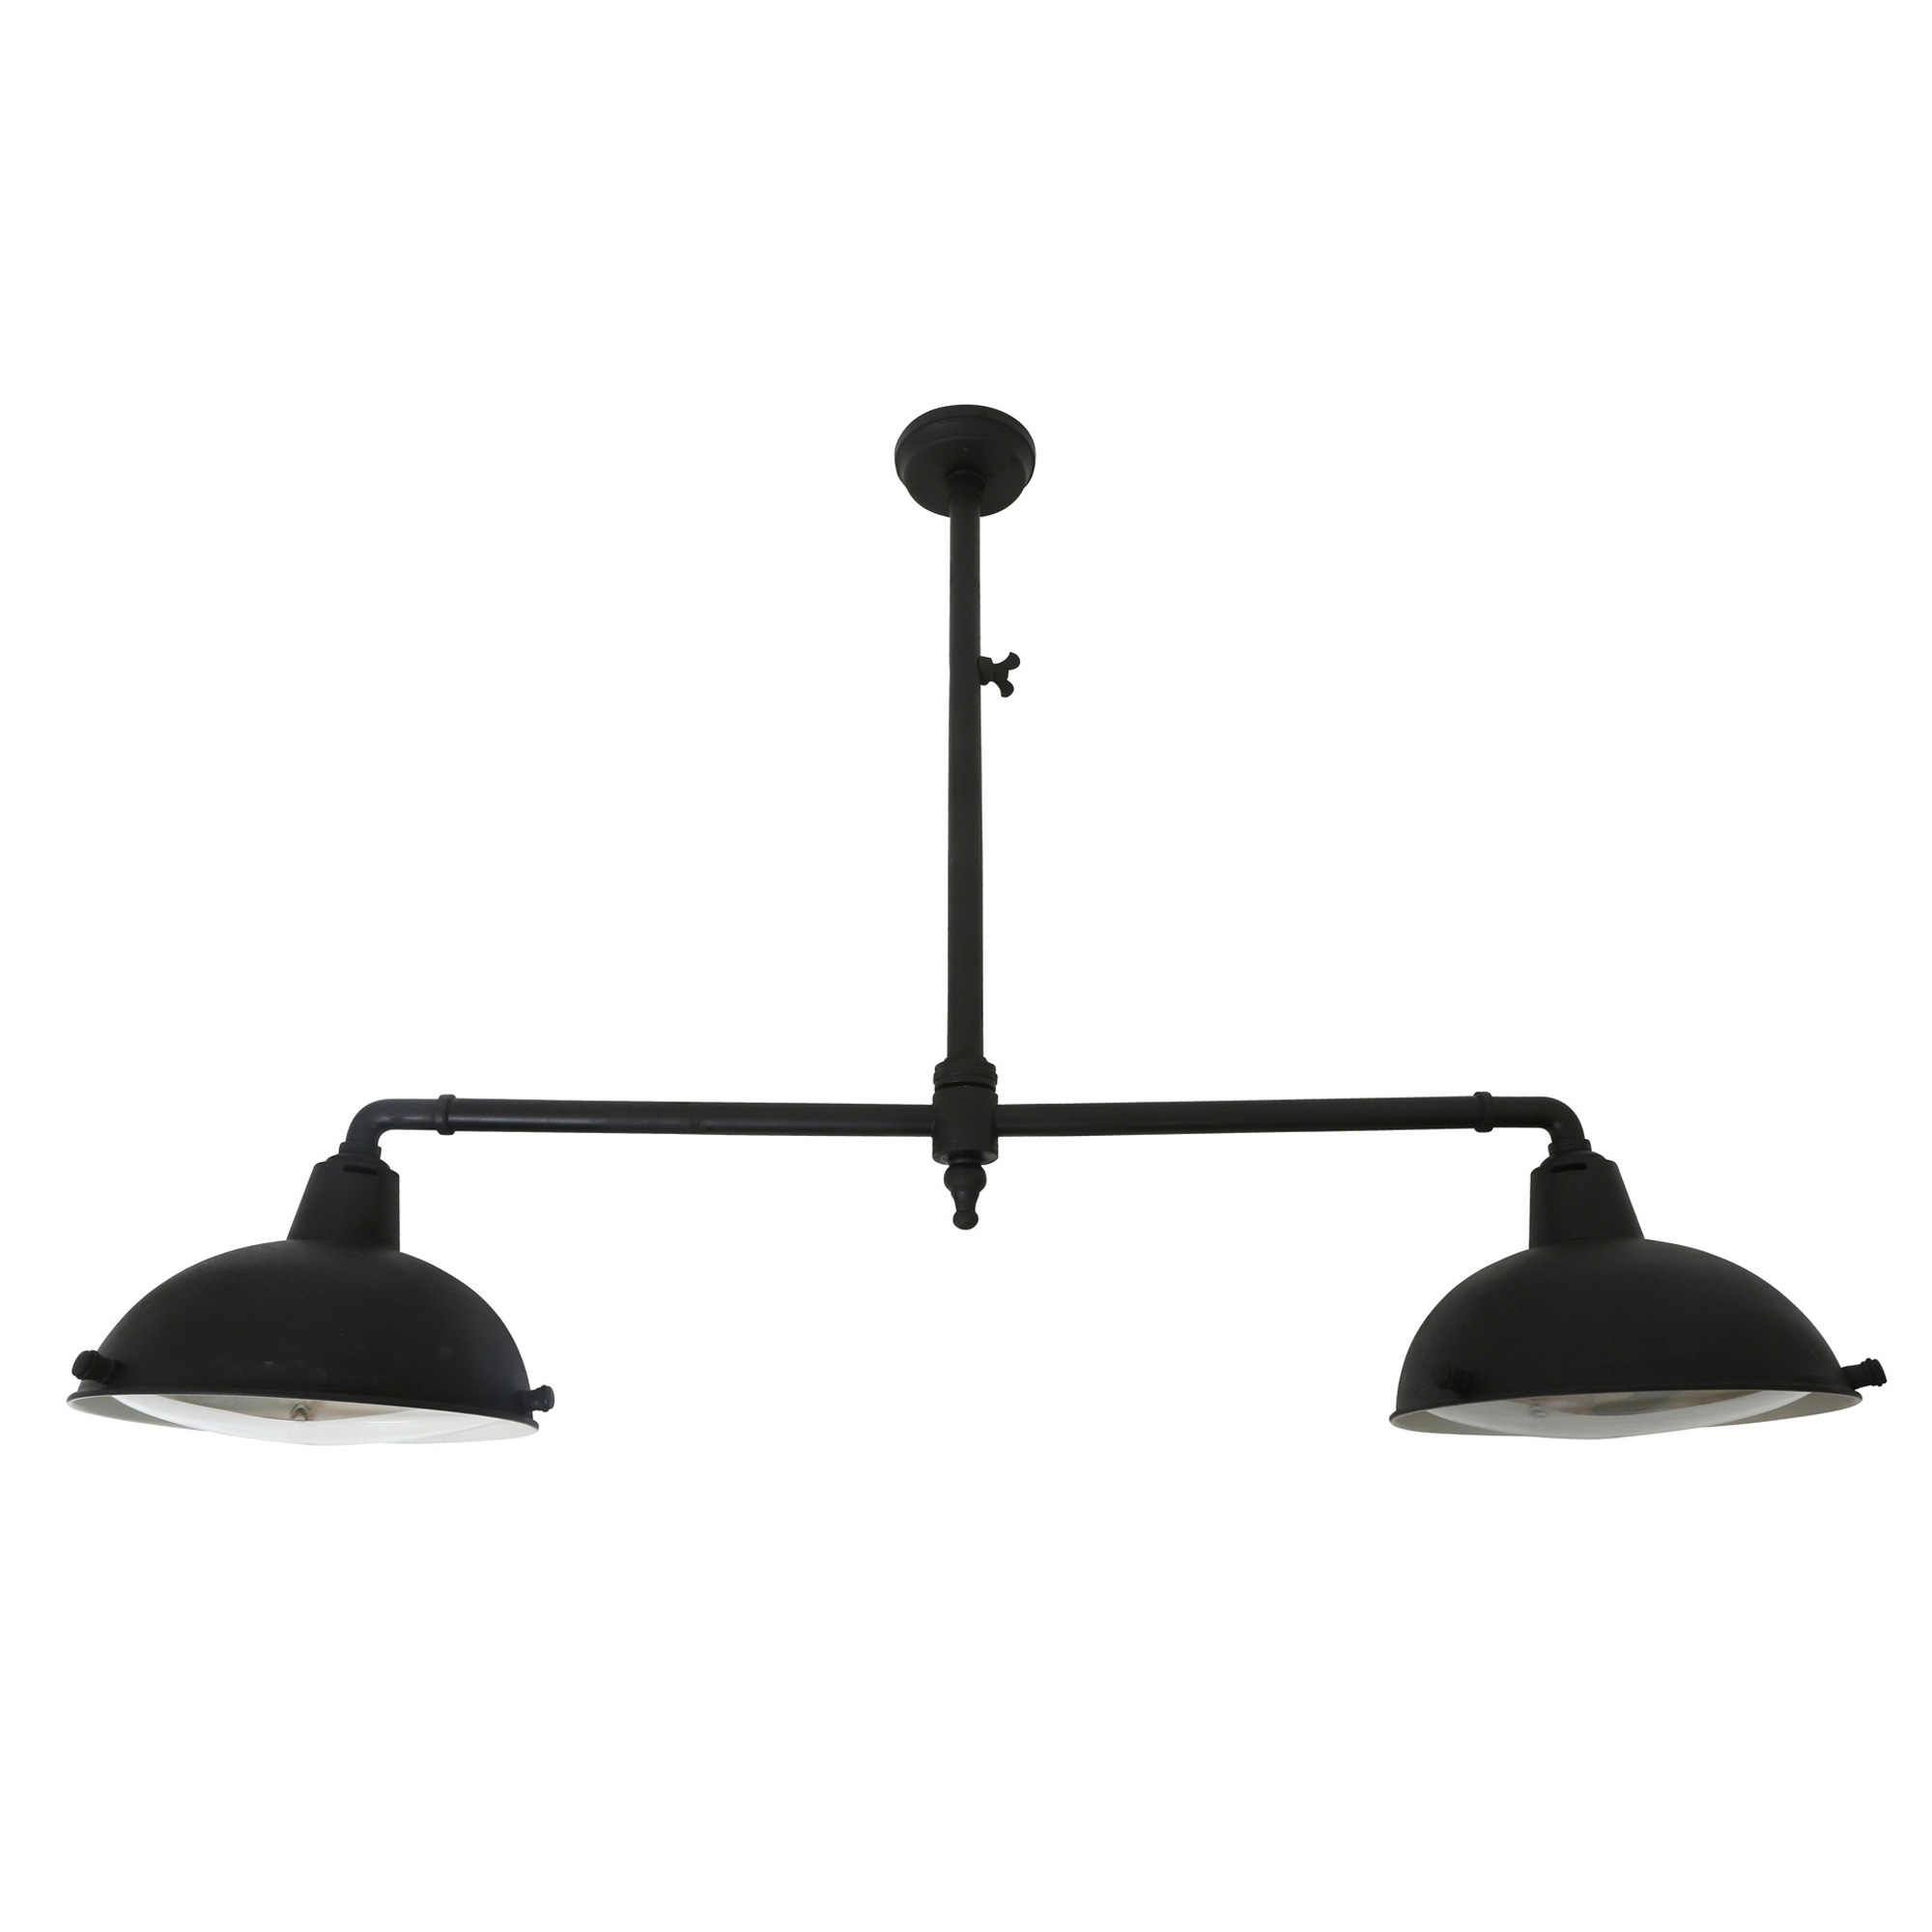 Hanglamp Billiards 2 black